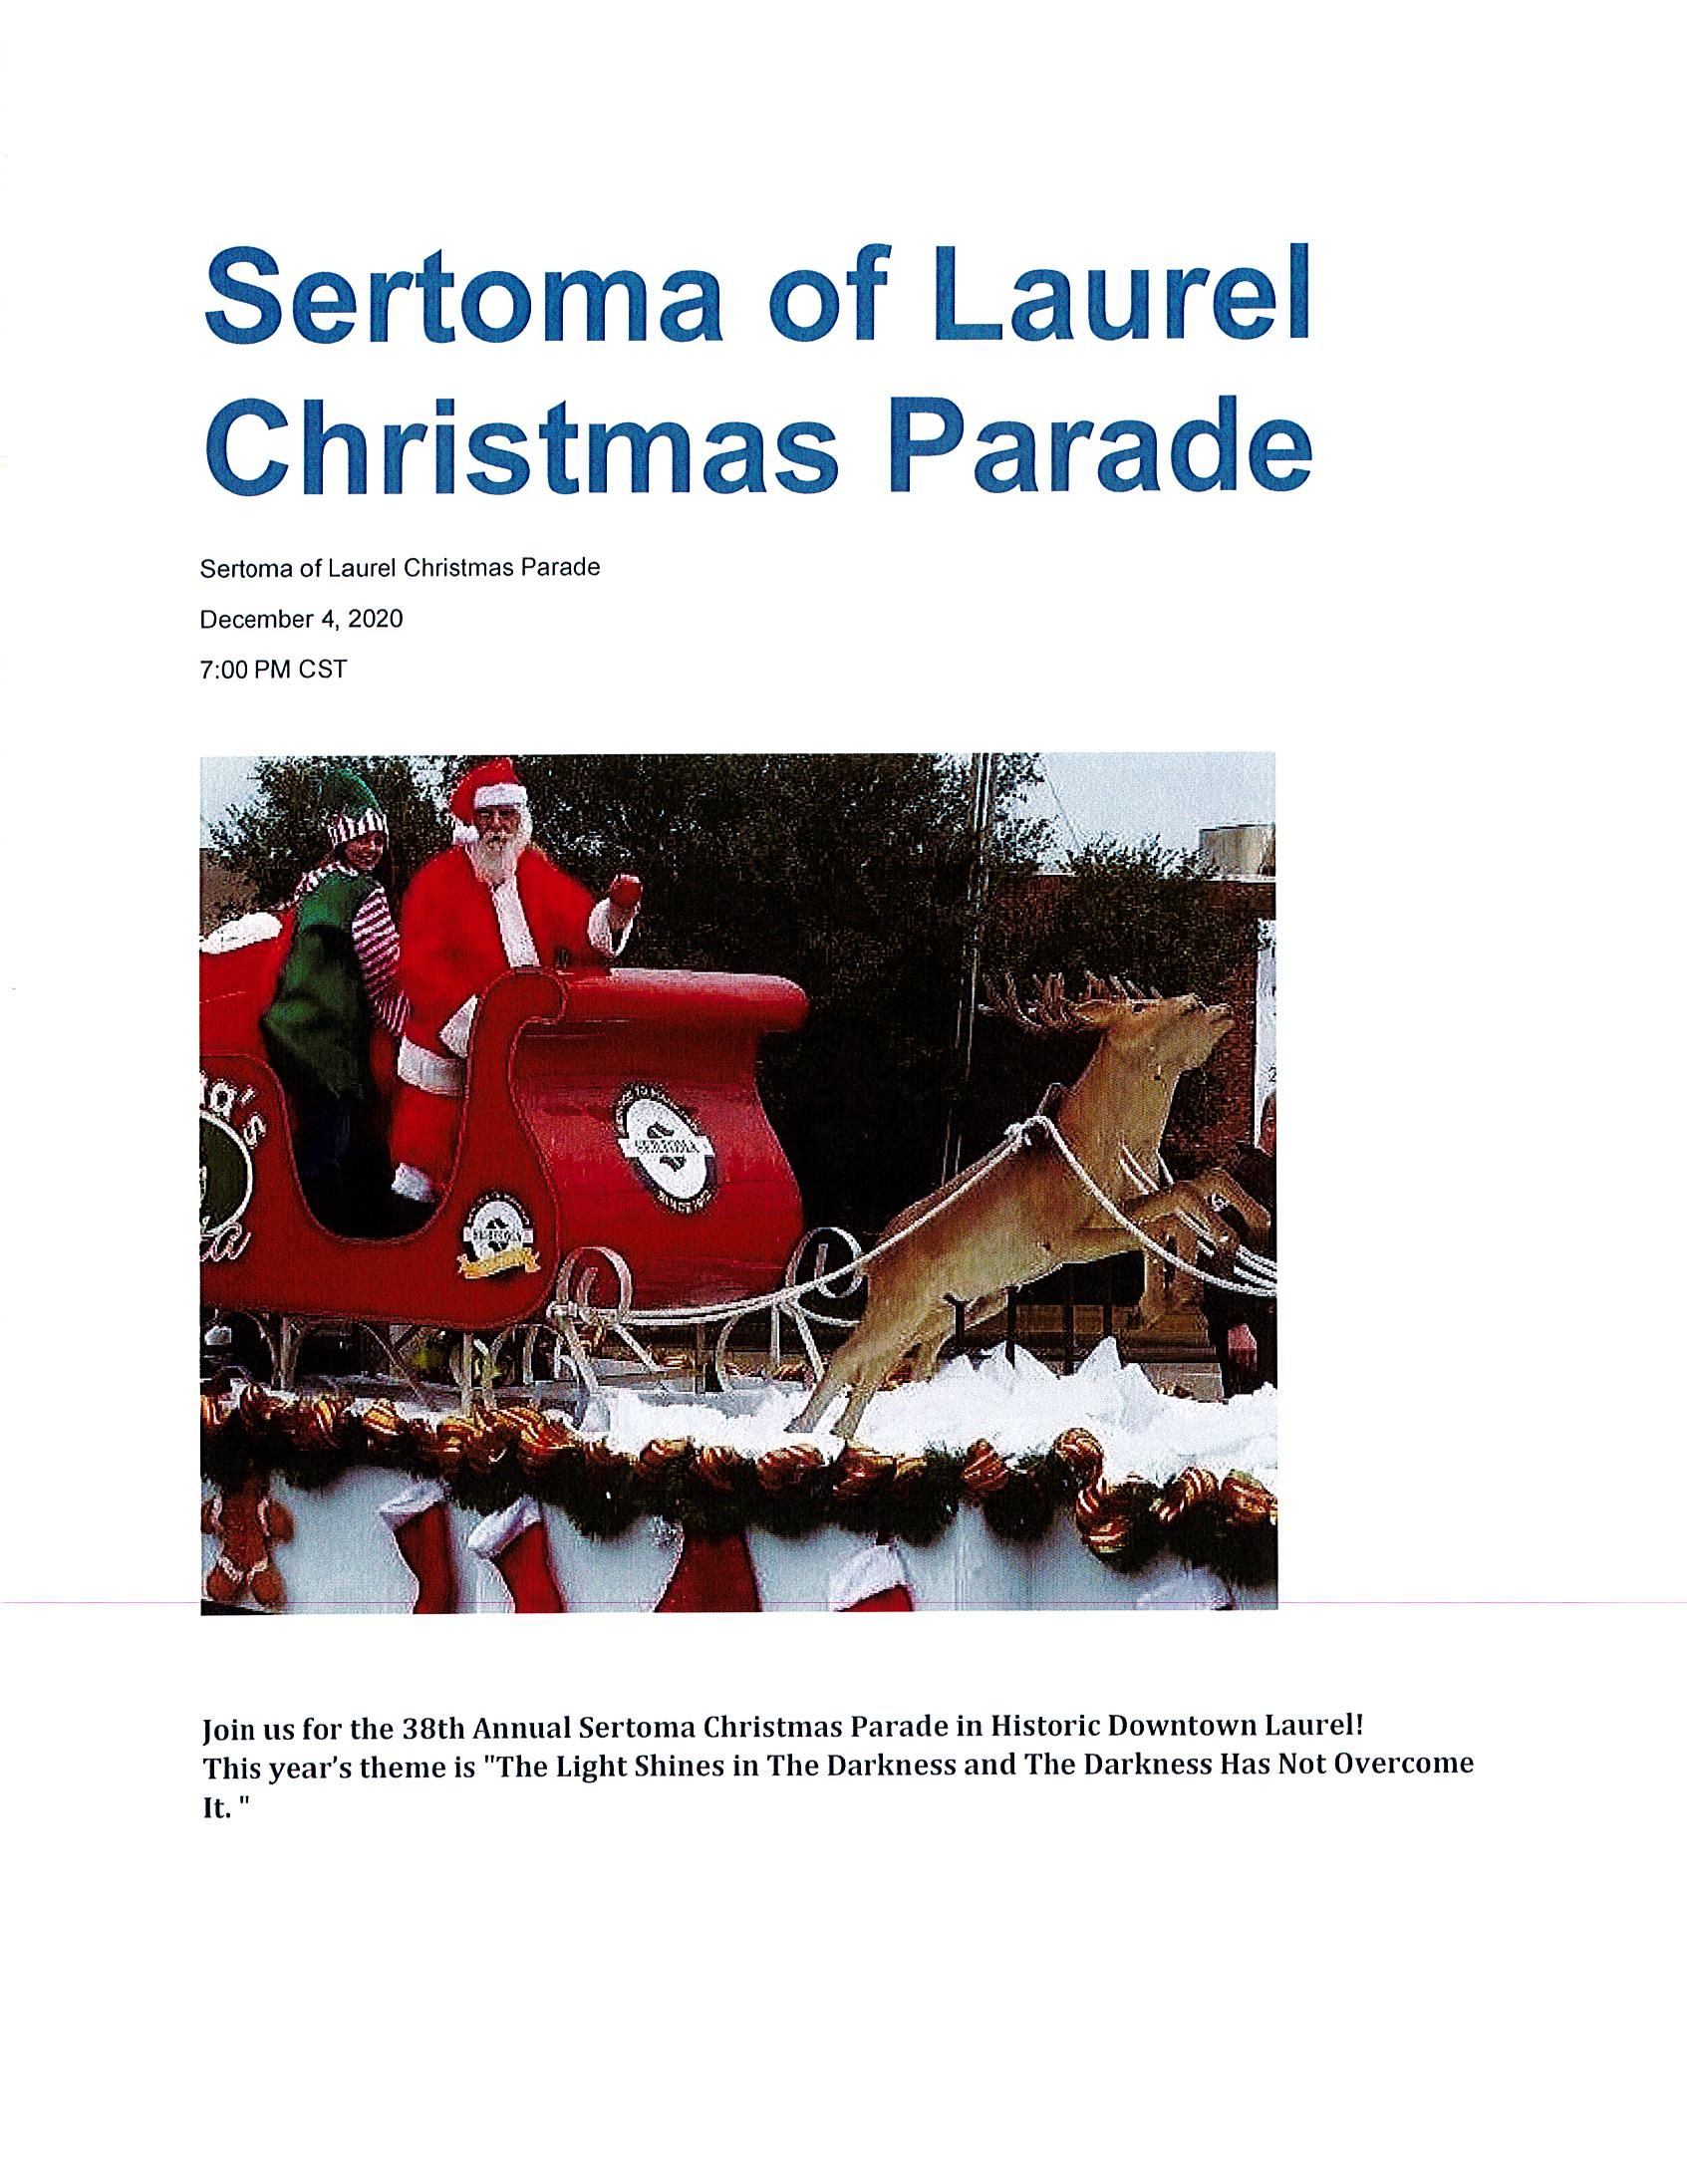 The City of Laurel, Sertoma of Laurel Christmas Parade